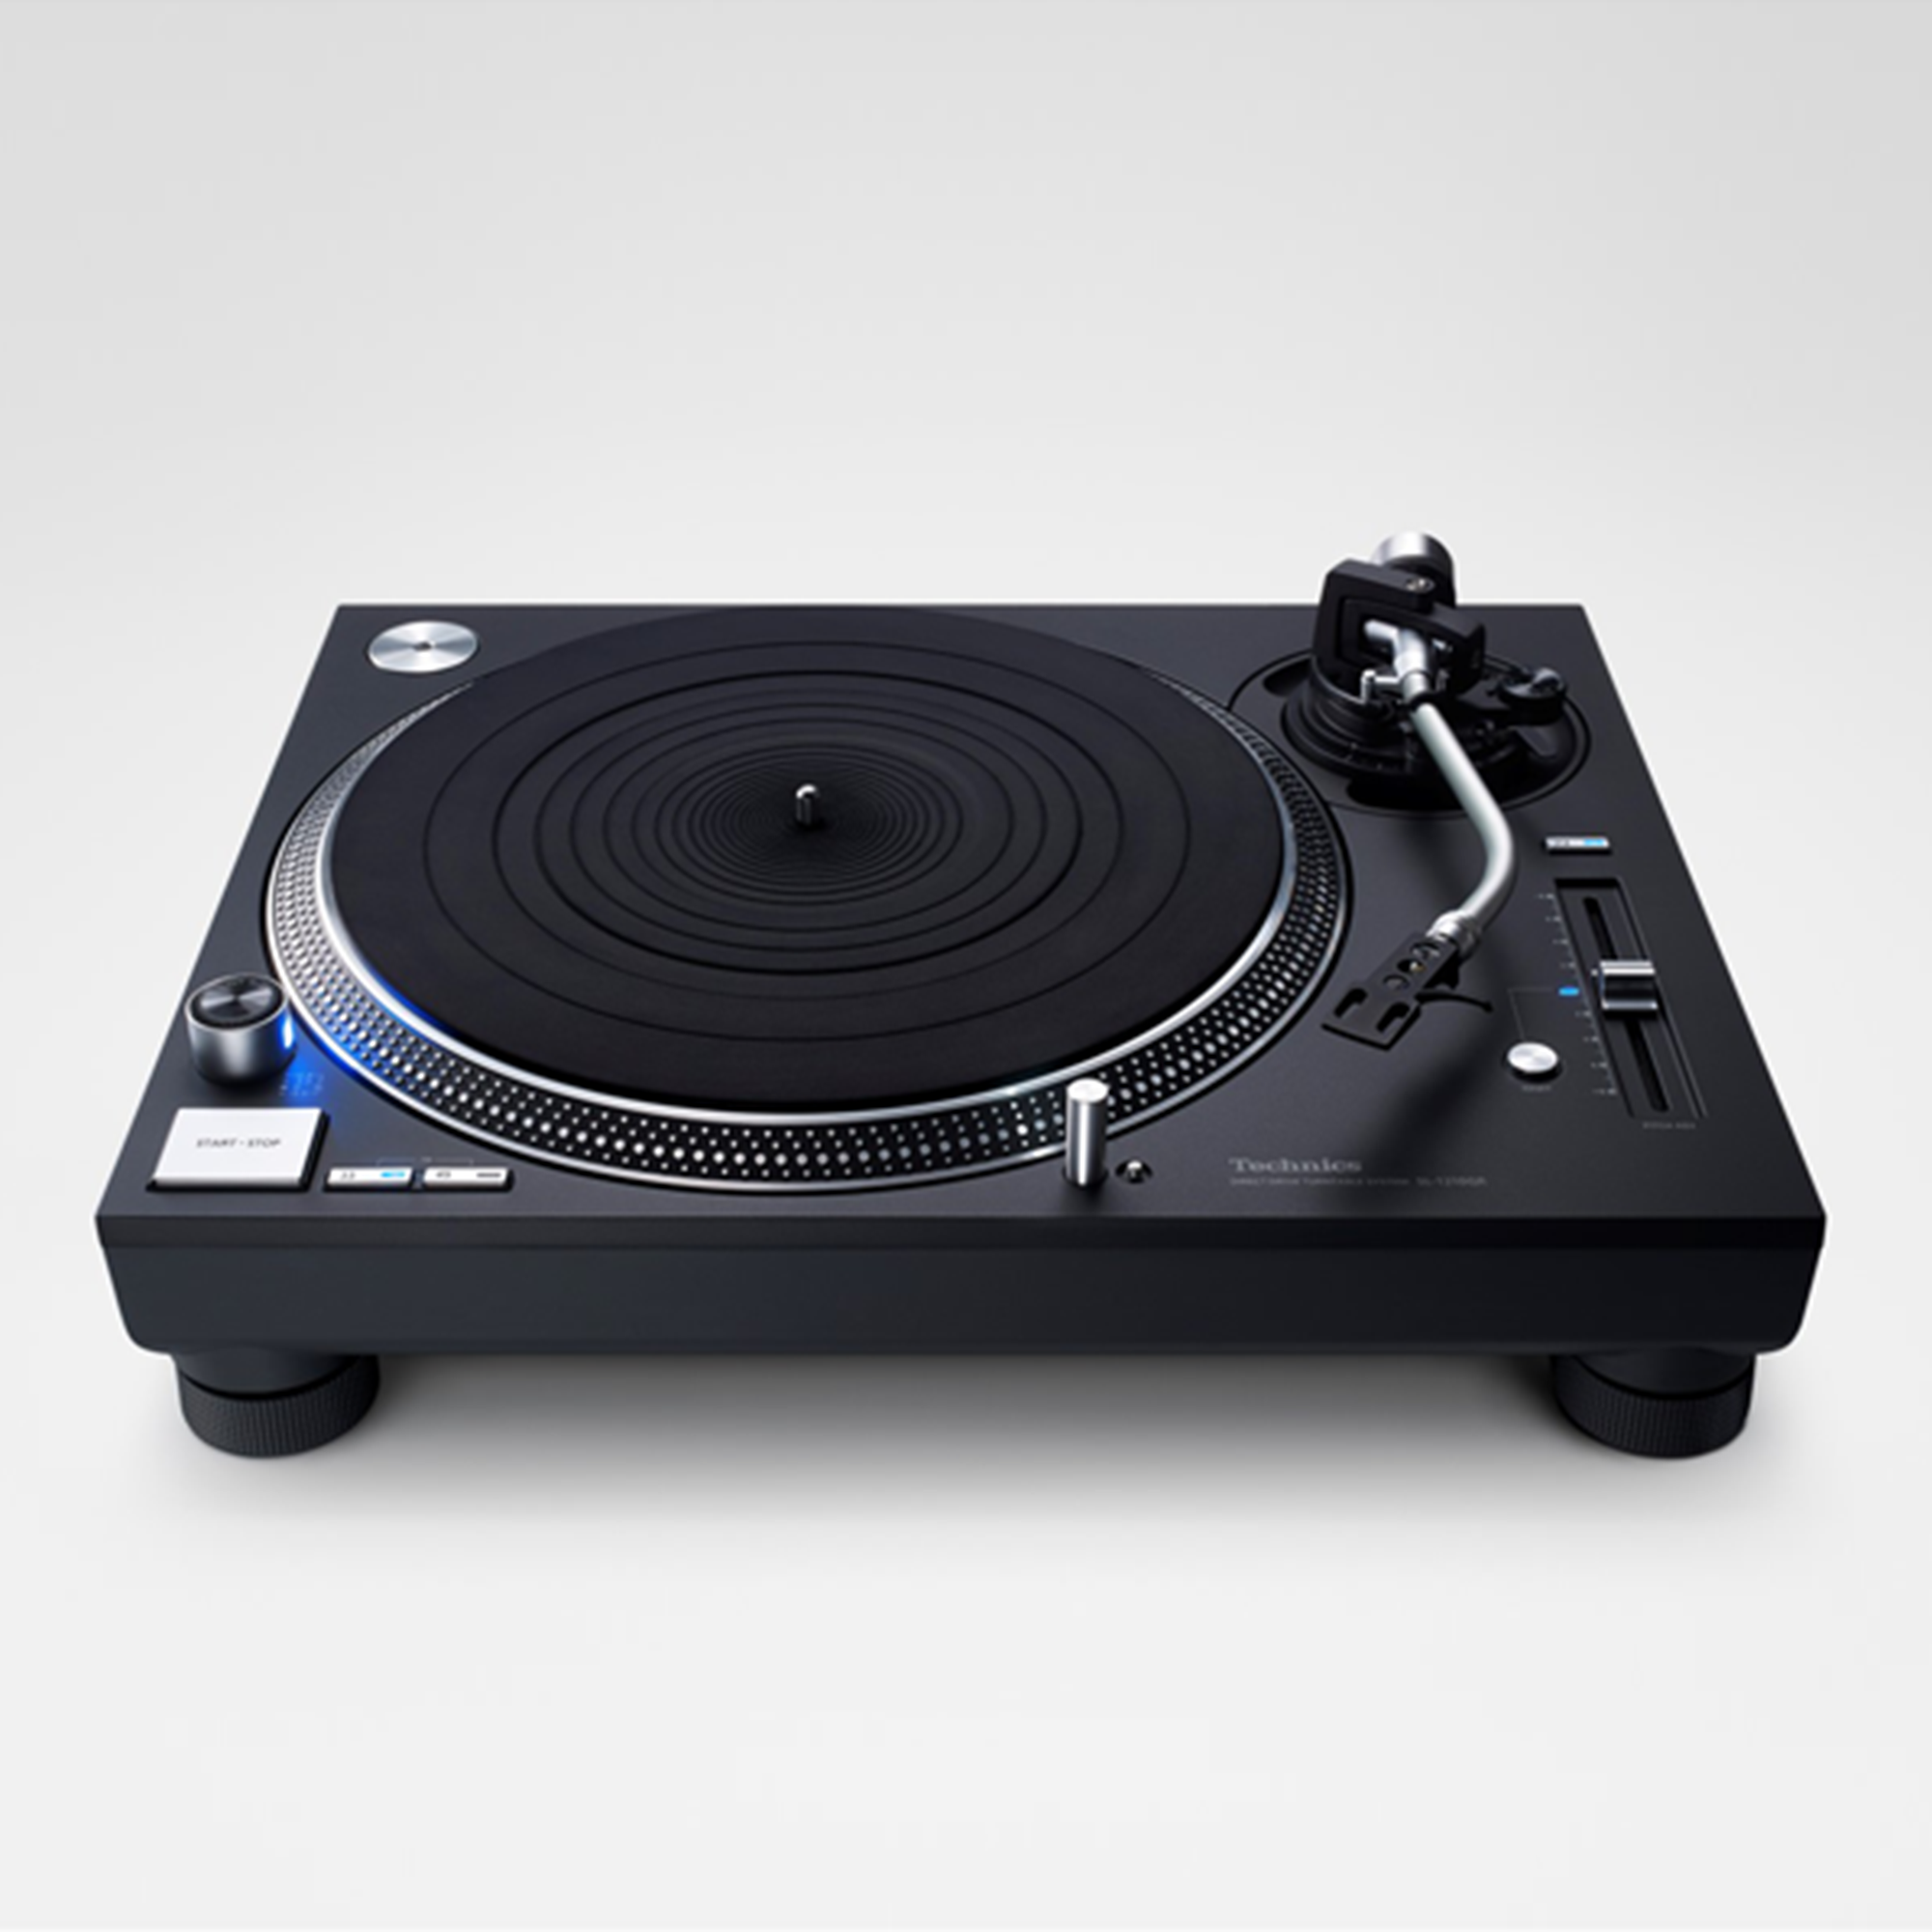 Technics Grand Class SL-1210GR Direct Drive Turntable System